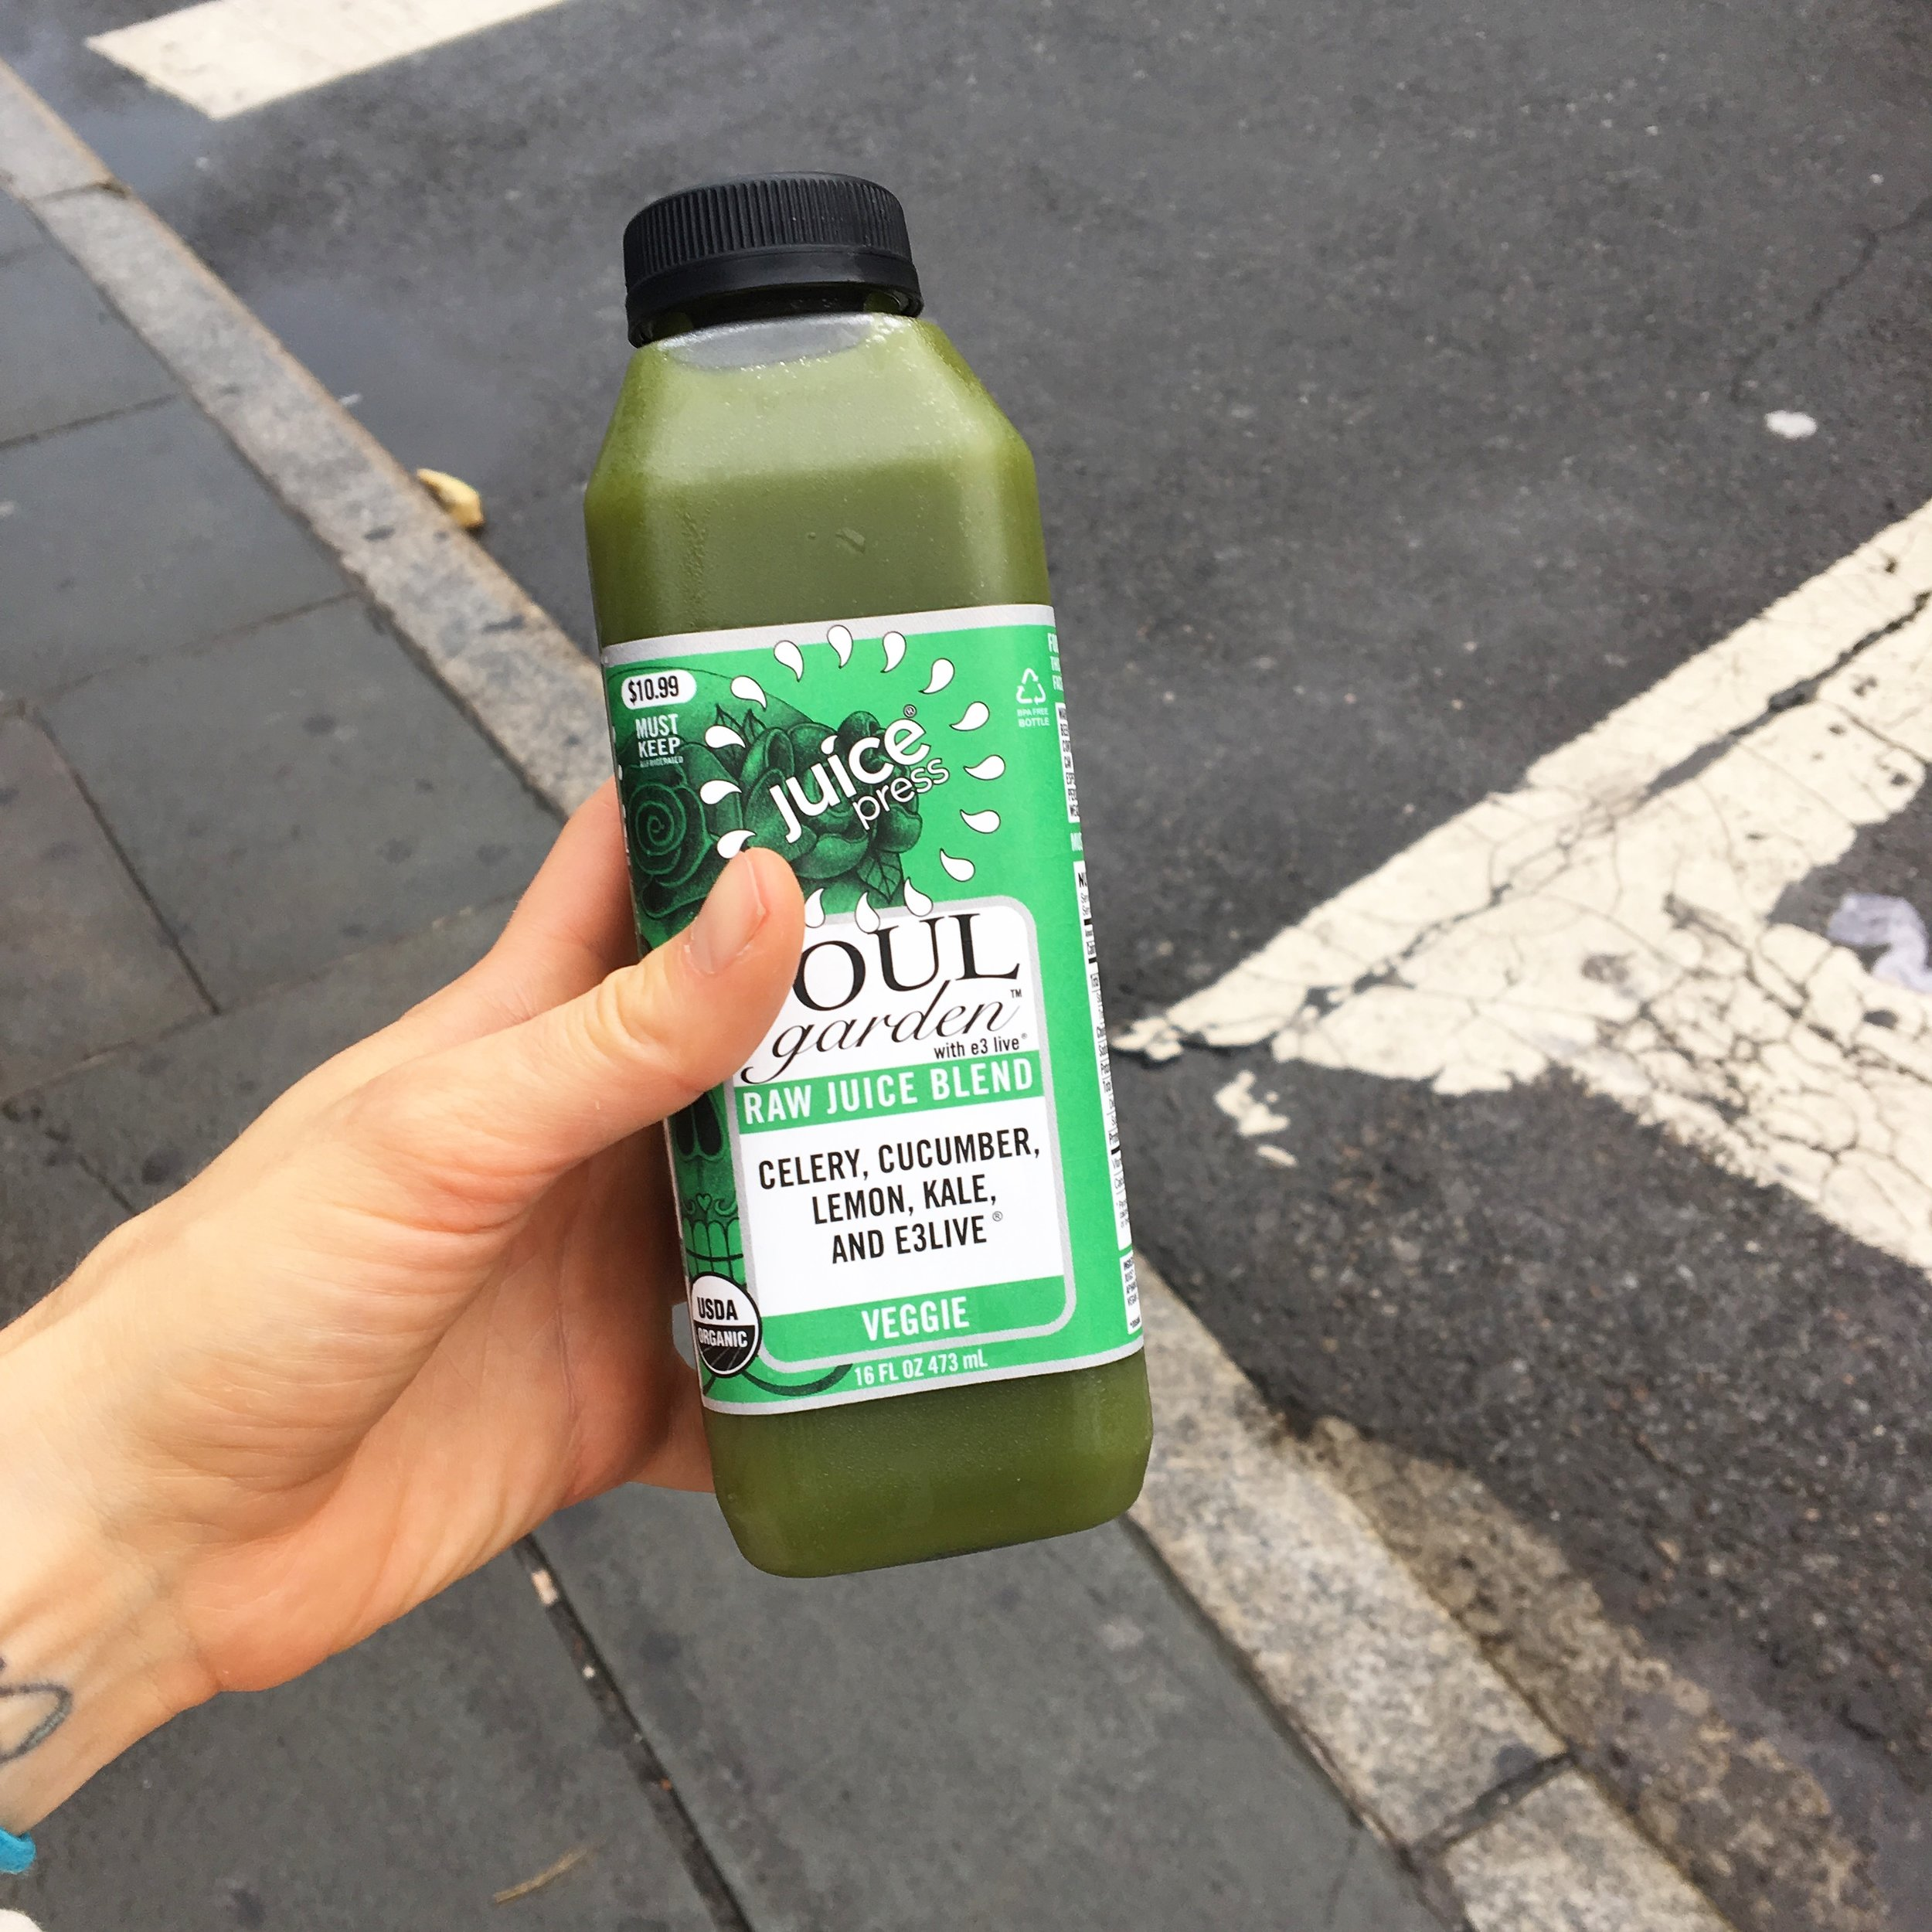 Grabbing a green juice out is also another reliable option, although not always budget friendly.